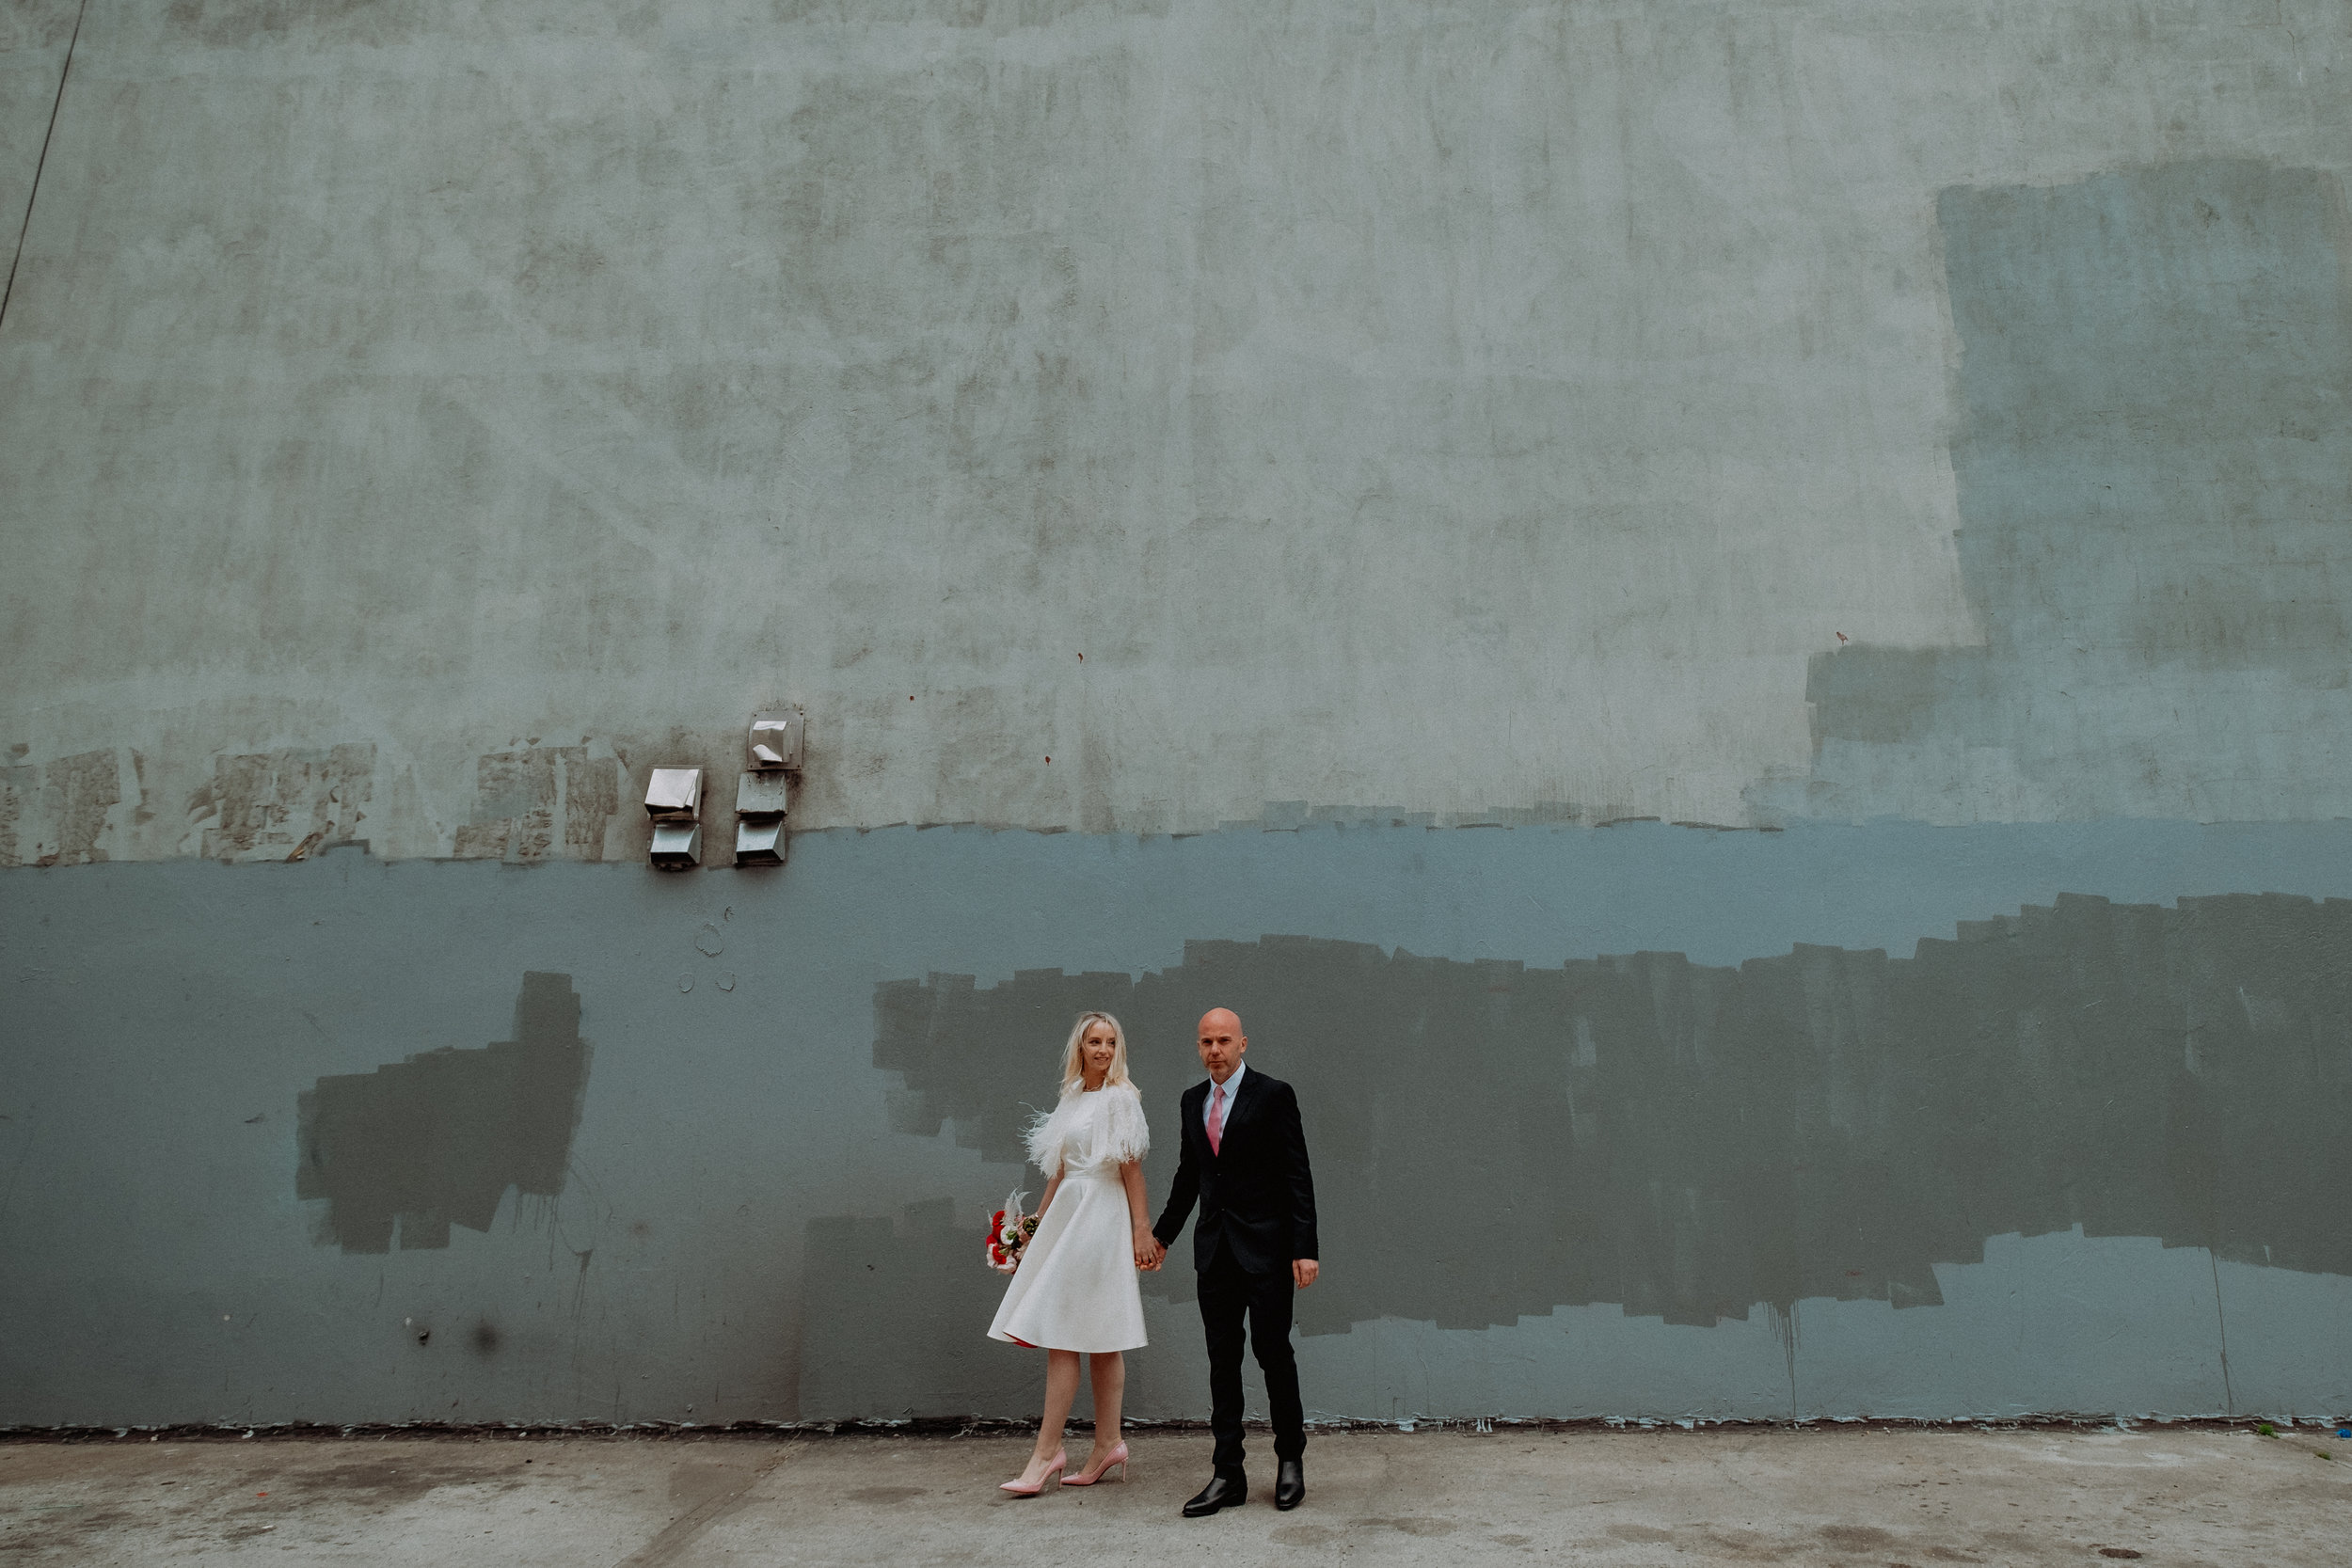 Brooklyn_City_Hall_Elopement_Photographer_Chellise_Michael_Photography228.JPG